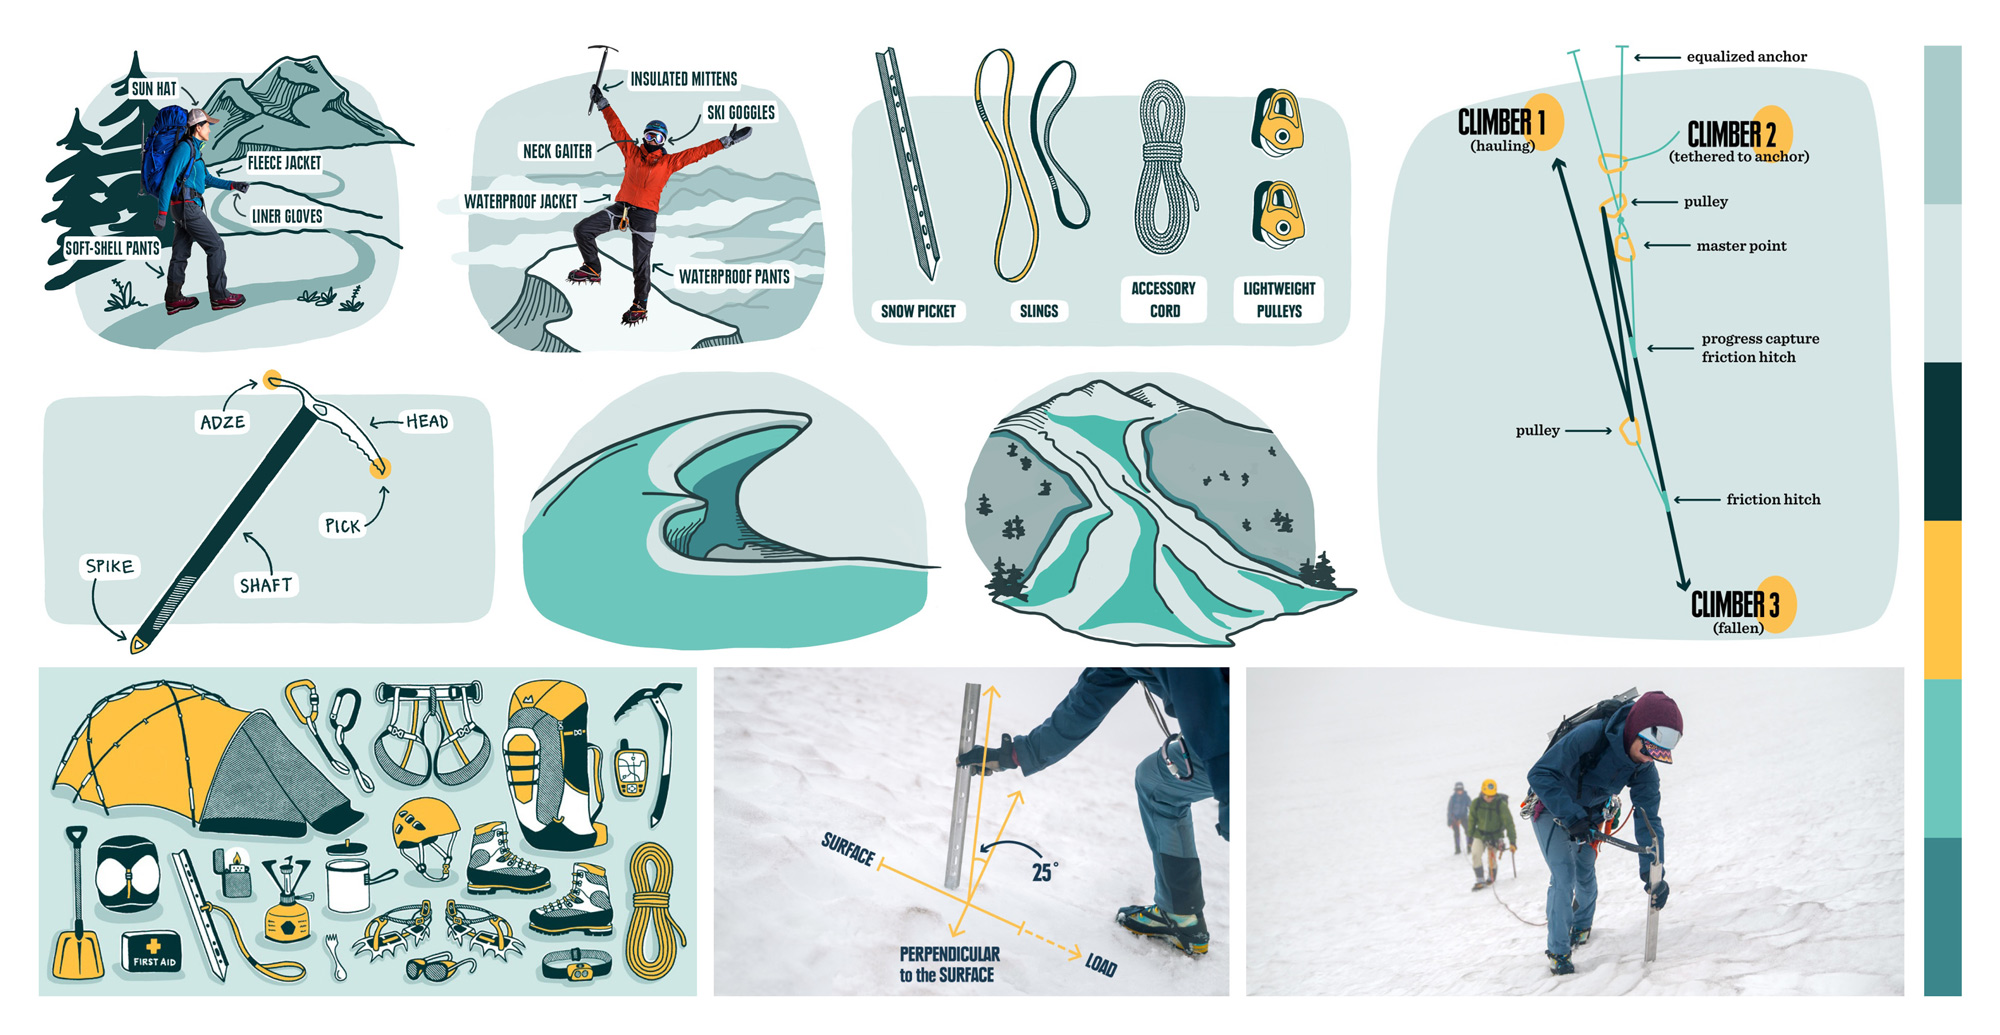 illustrations and photos from the REI Expert Advice mountaineering content and style guide